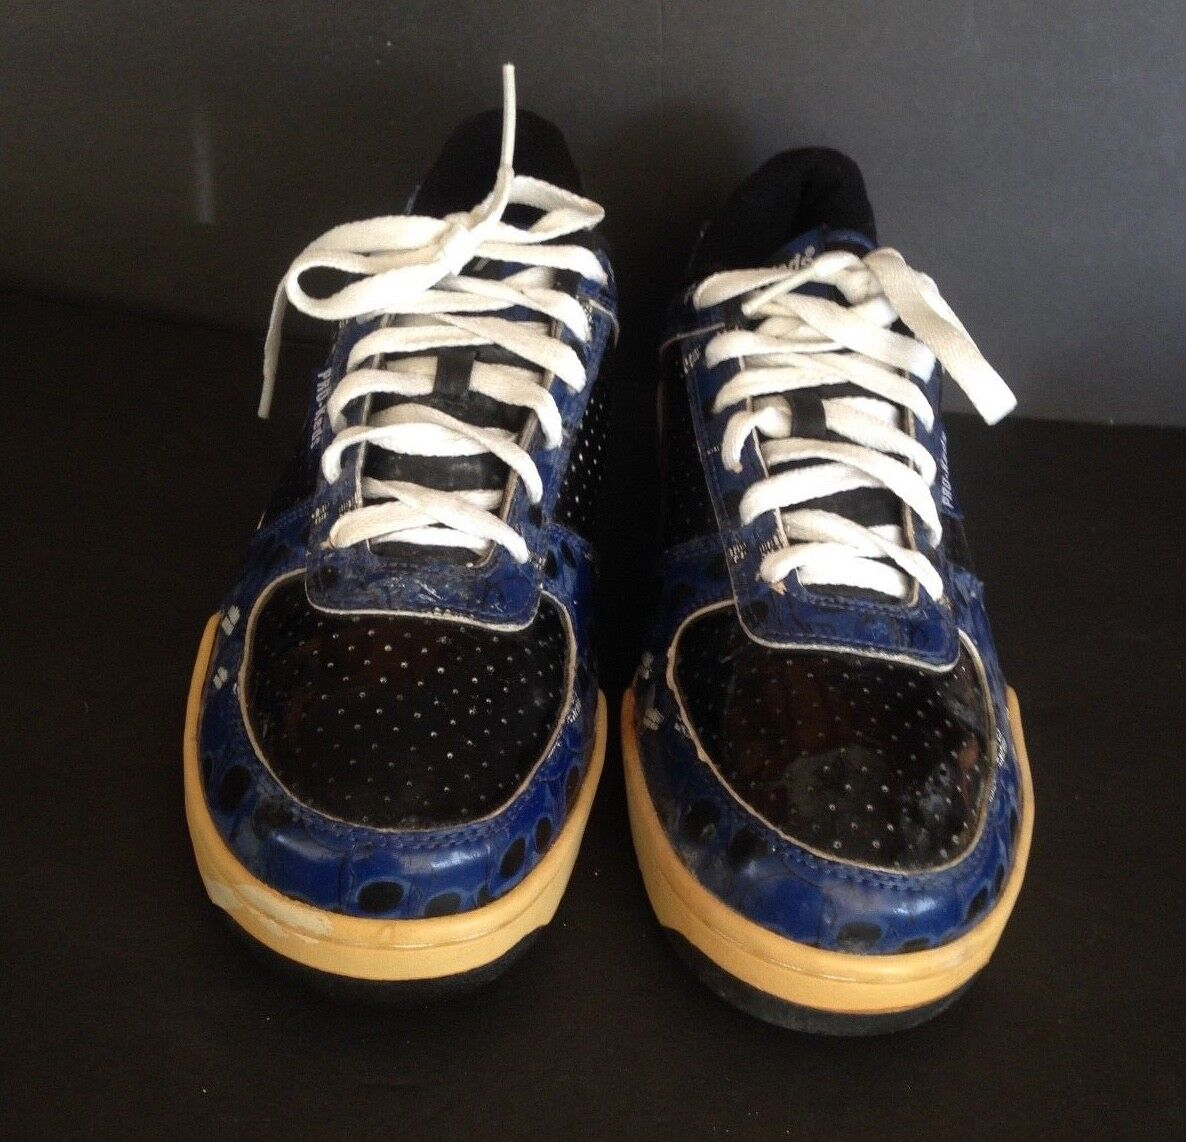 PRO-KEDS LOW SNEAKERS PM 1477 ROAYL COURT blueE SKULL DESIGN SIZE 10 PRE-OWNED